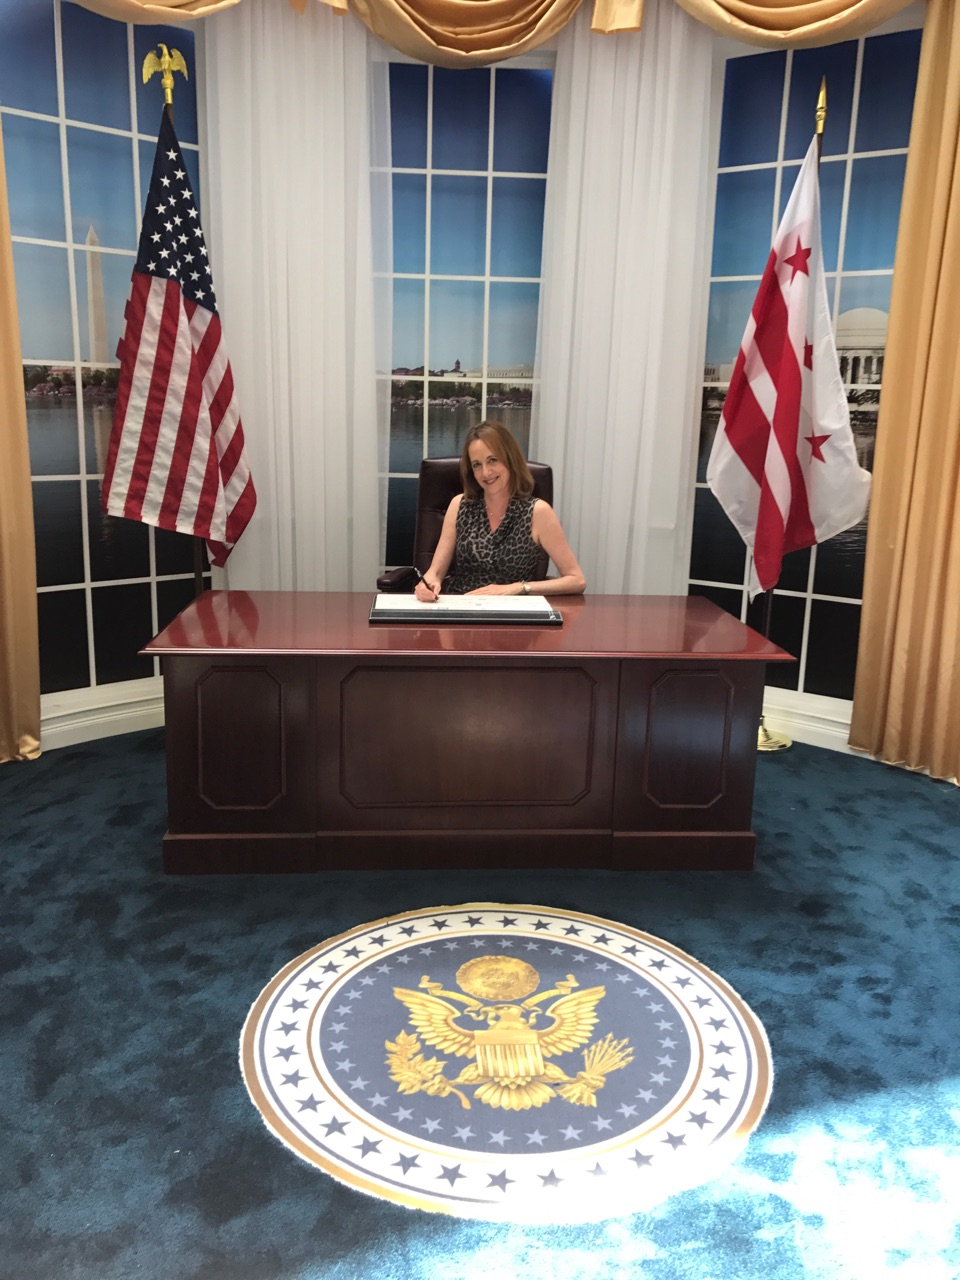 Denise Morton sitting at replica oval office Resolute desk